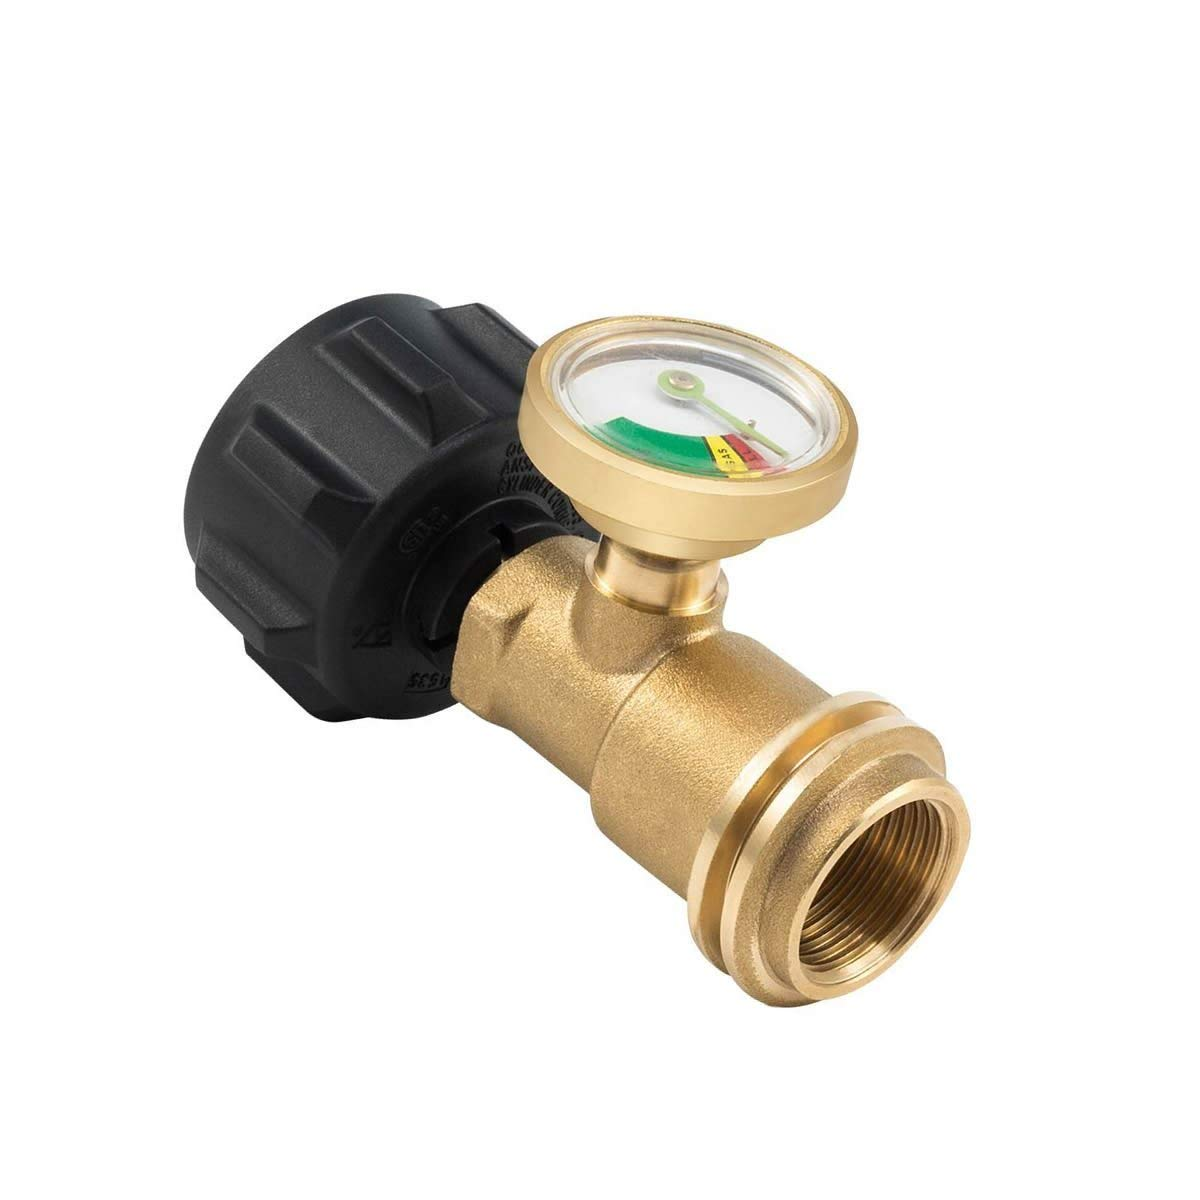 Propane Tank Gas Meter - Cylinder Gas Level Indicator Adapter - Used on All BBQ Grill,Heater, RV Camper & All Other Propane Appliances Leak Detector